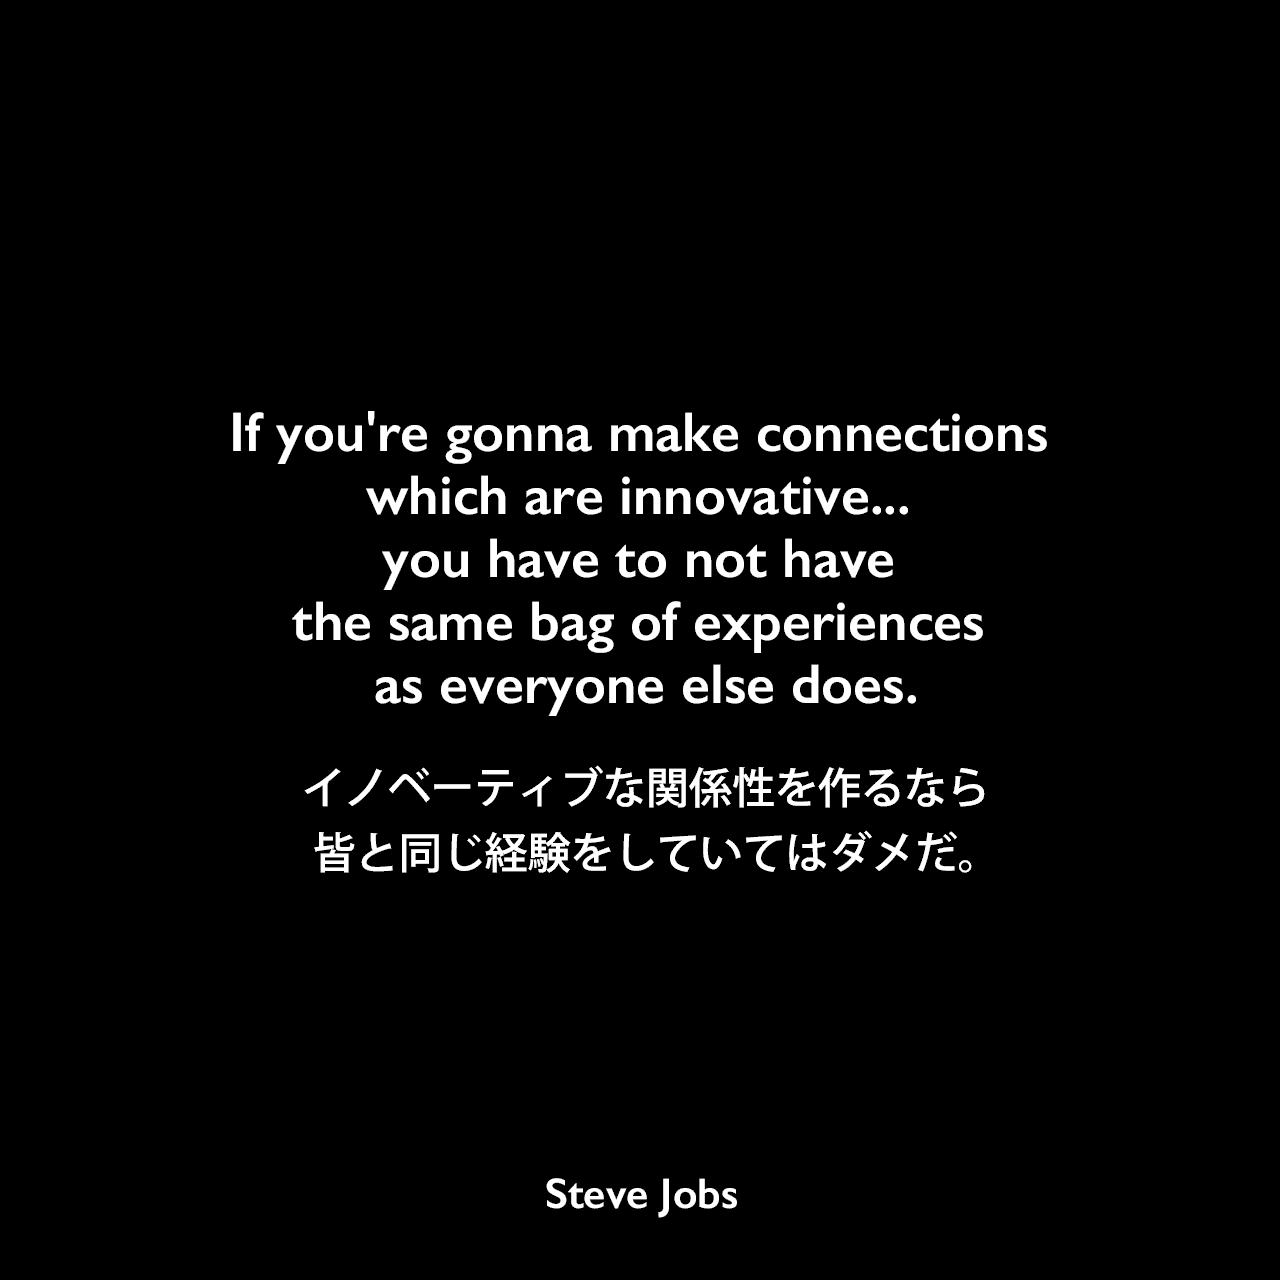 If you're gonna make connections which are innovative... you have to not have the same bag of experiences as everyone else does.イノベーティブな関係性を作るなら、皆と同じ経験をしていてはダメだ。Steve Jobs